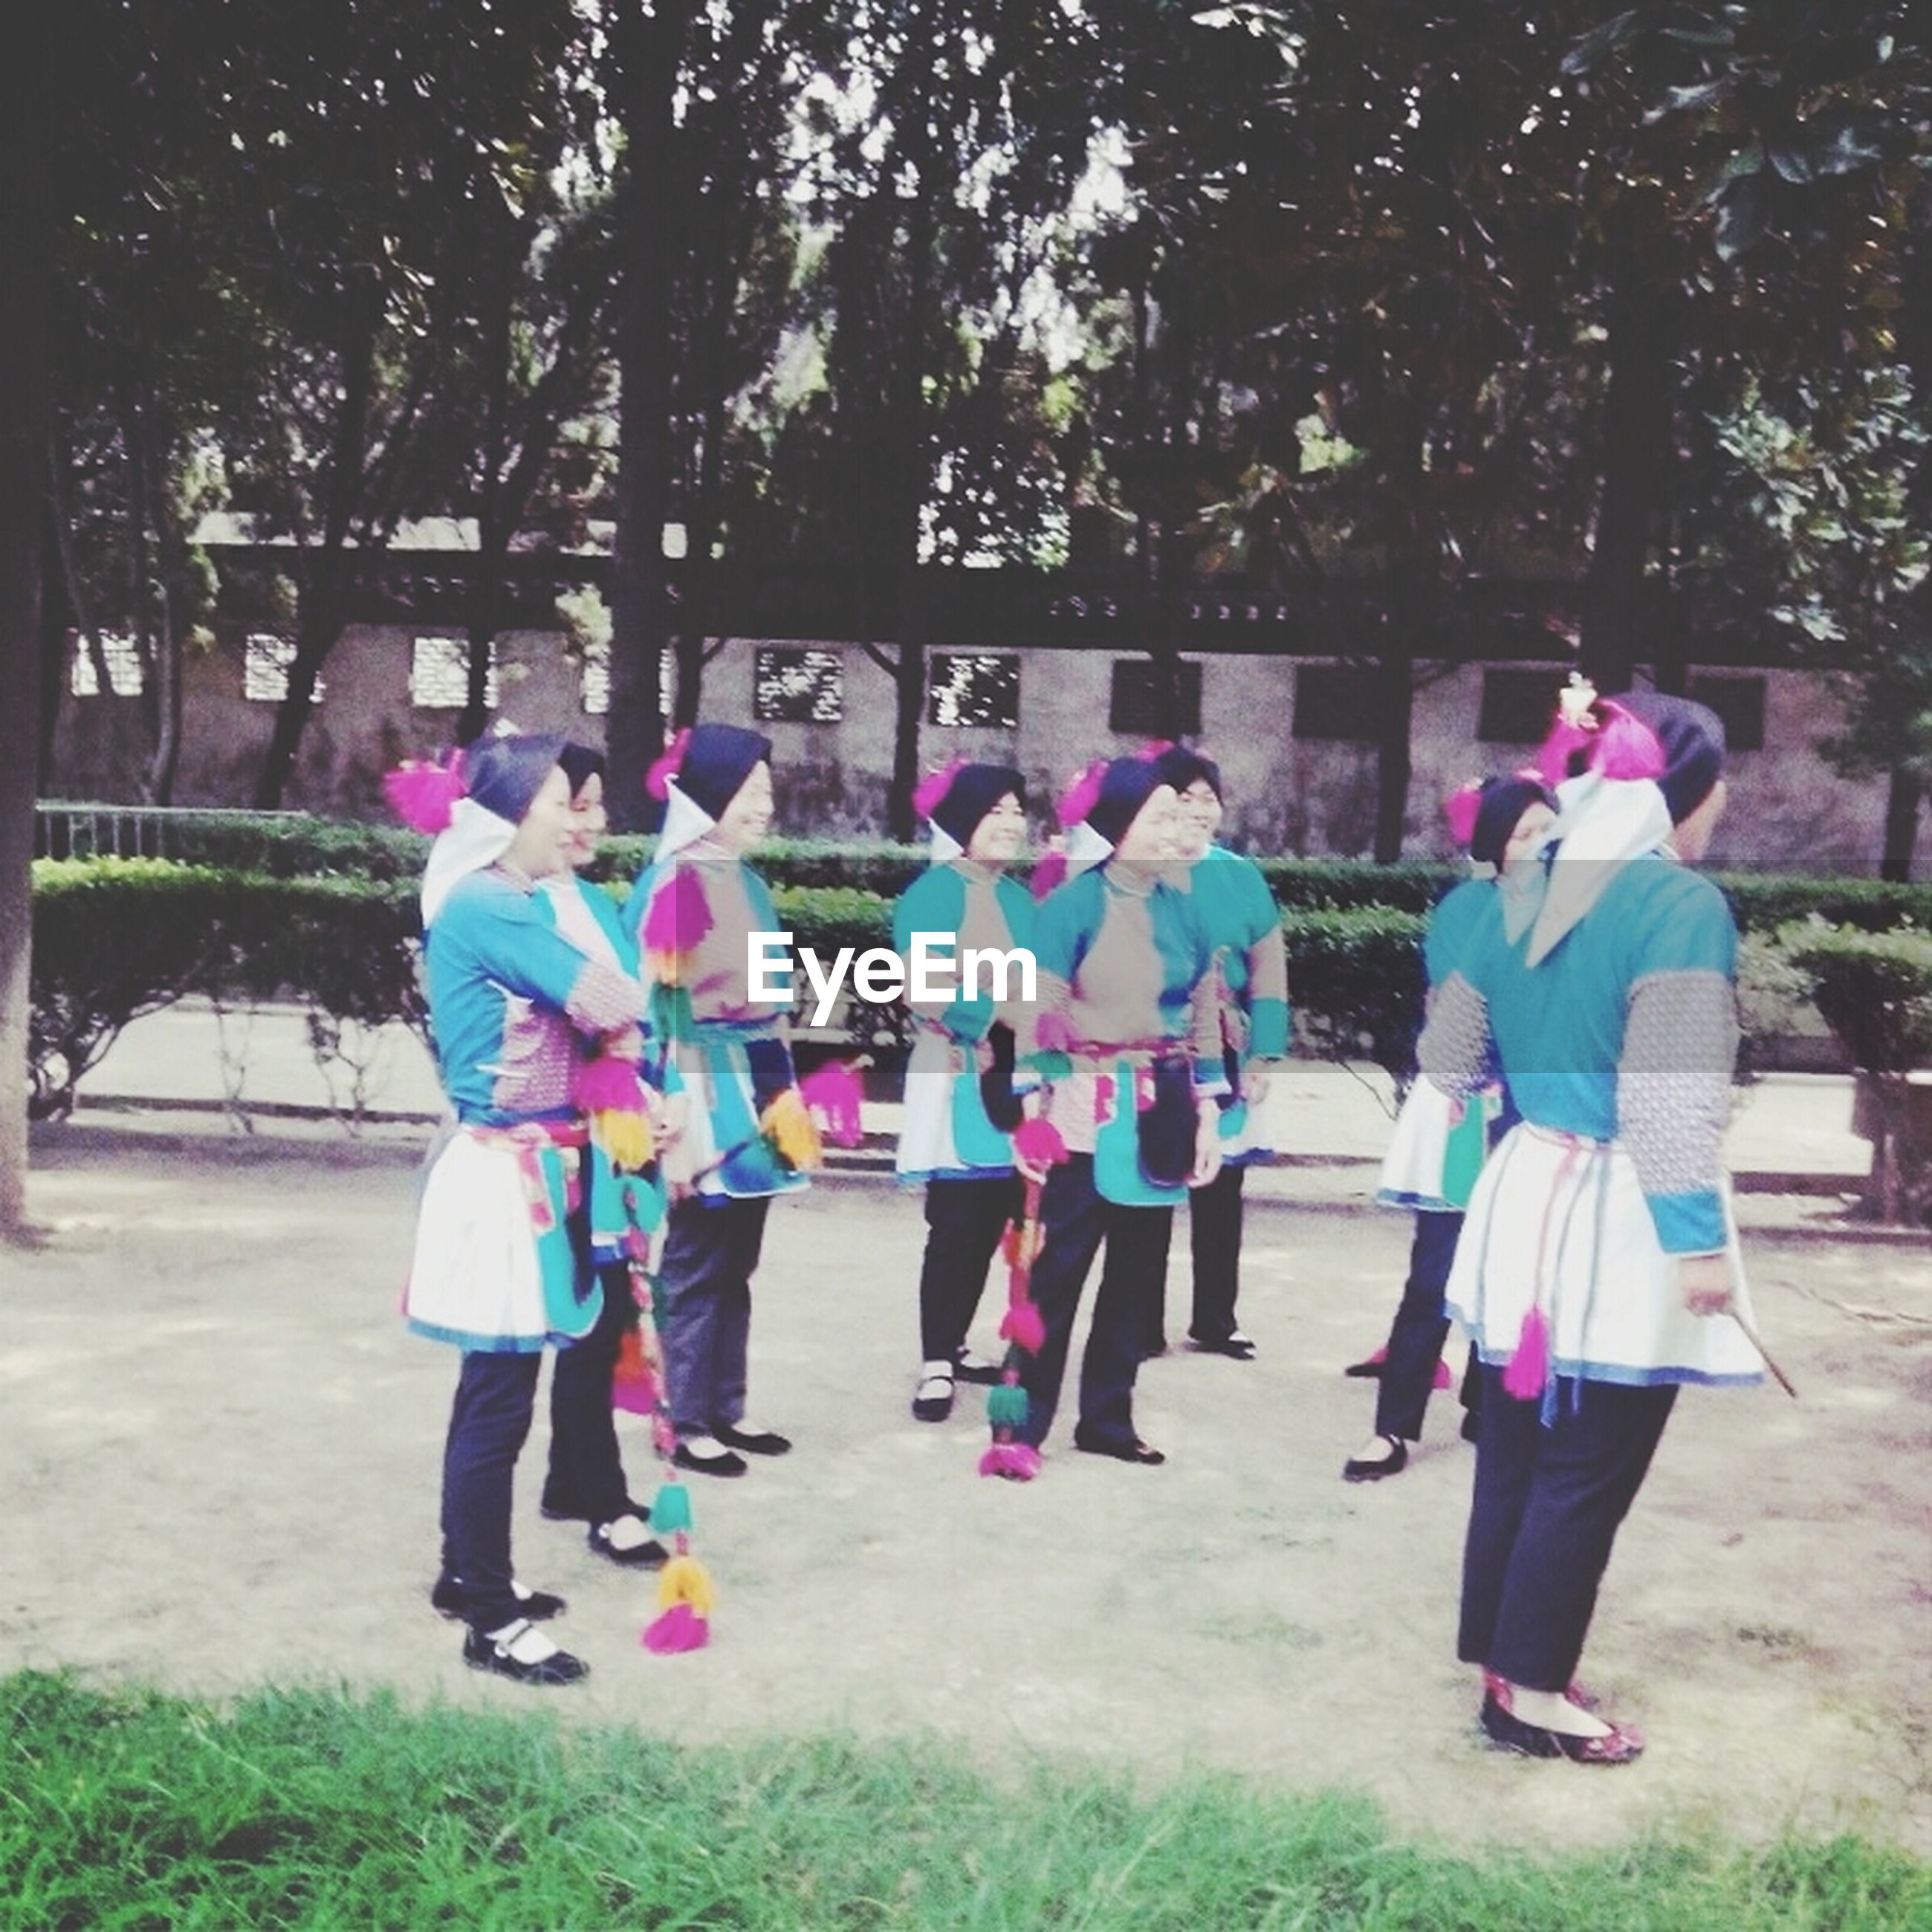 full length, lifestyles, leisure activity, person, rear view, casual clothing, walking, men, park - man made space, tree, grass, girls, togetherness, childhood, umbrella, field, standing, day, outdoors